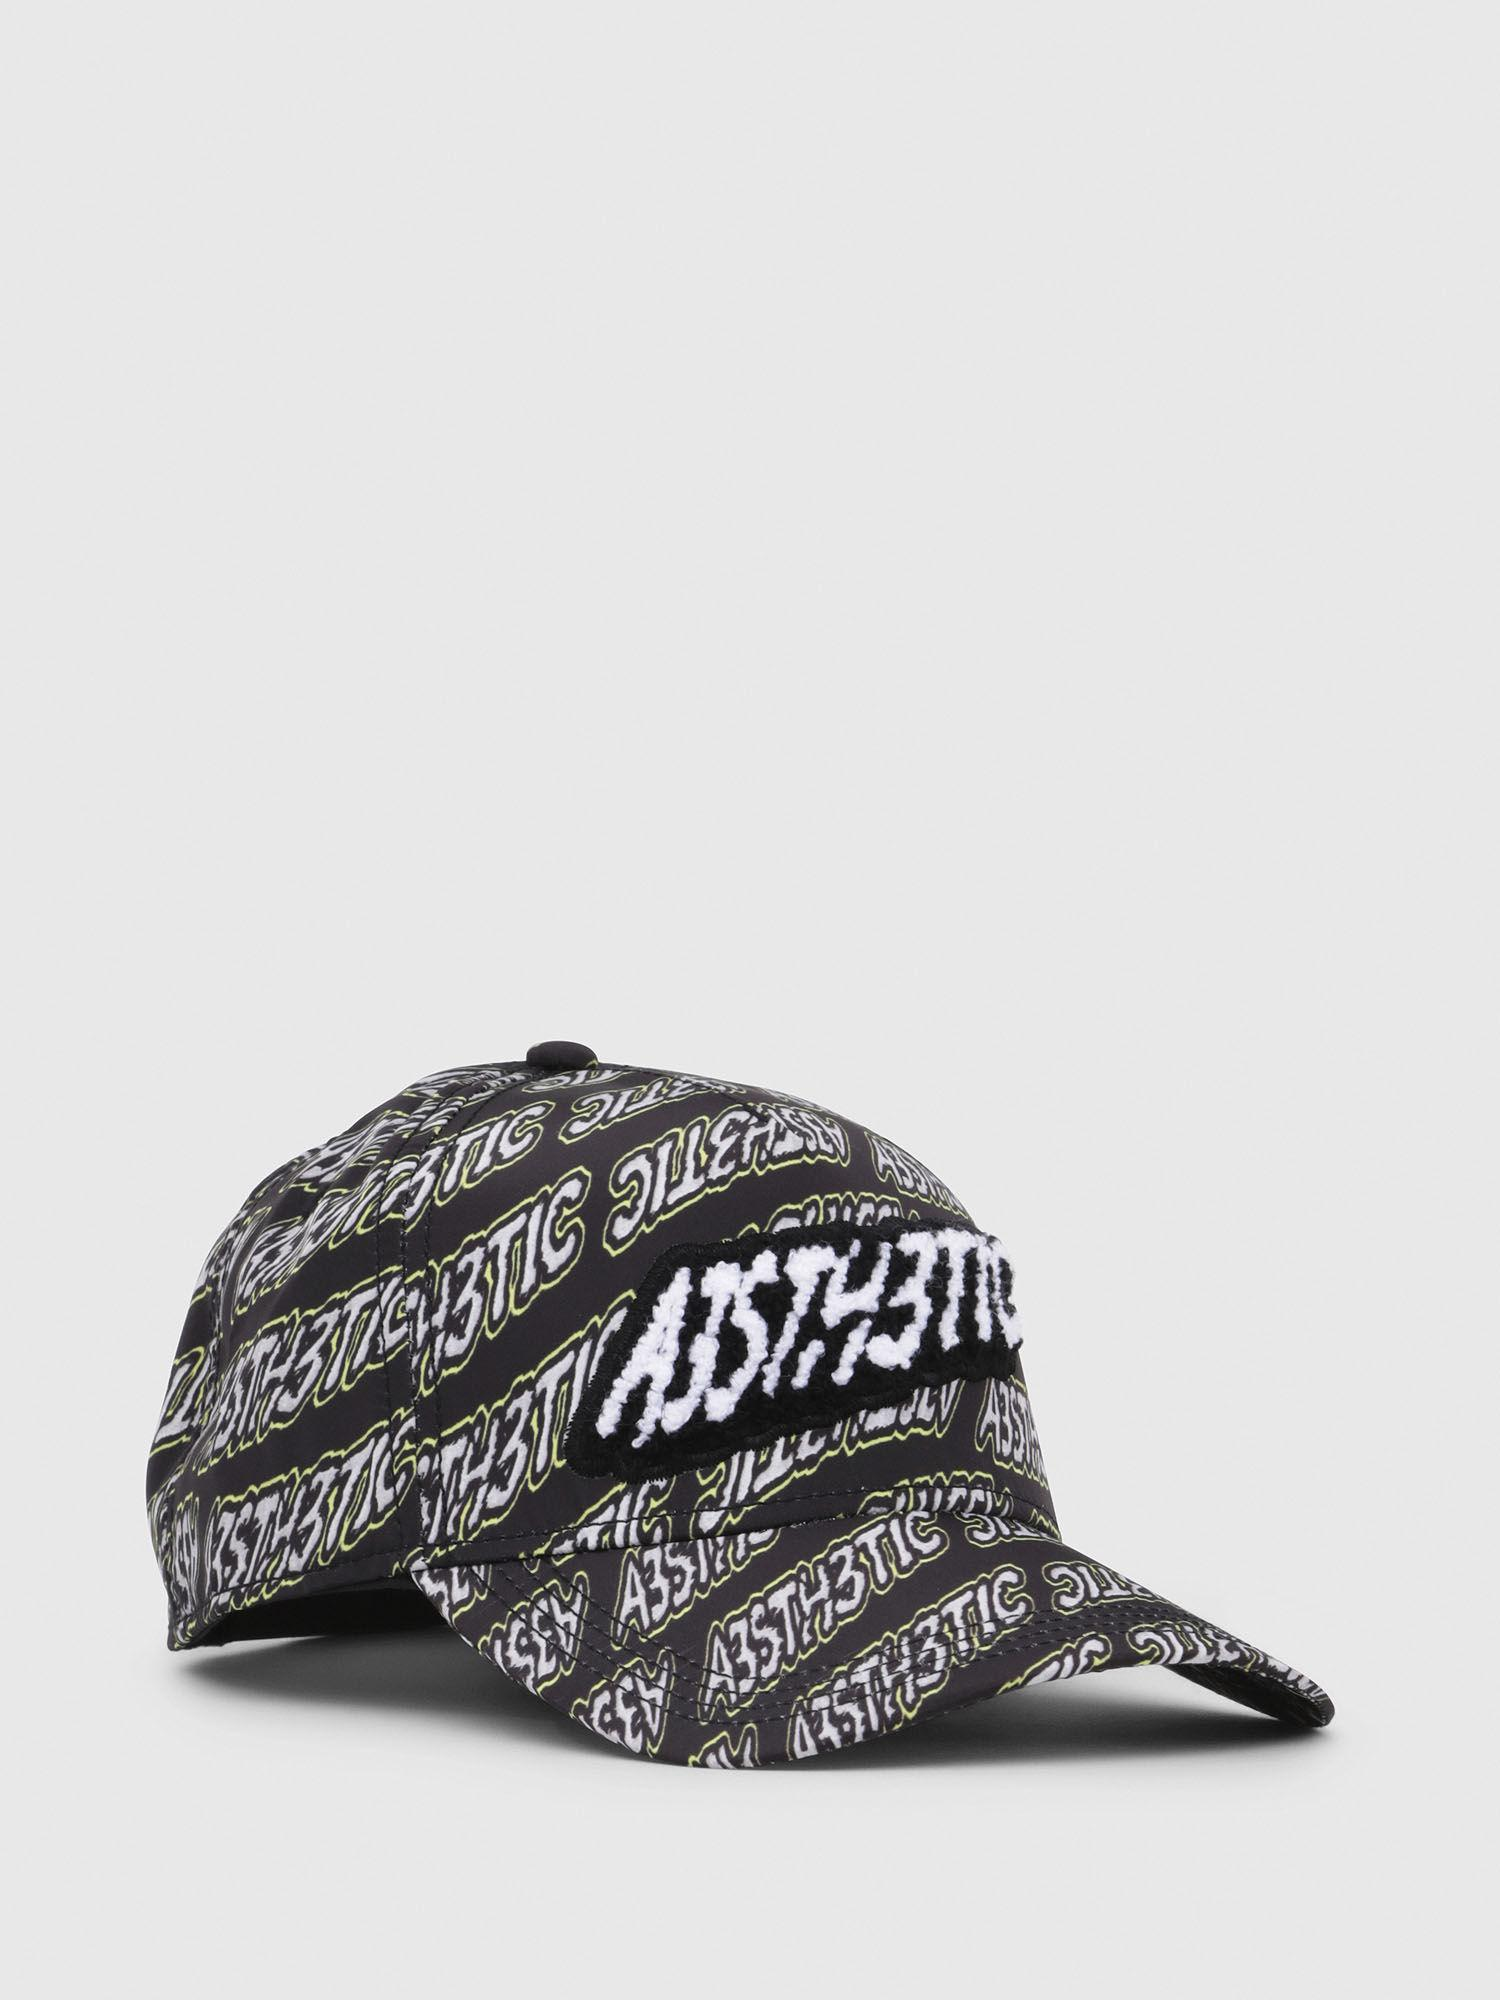 d4ceb58cd69 DIESEL Printed Baseball Cap With Patch in Black - Lyst